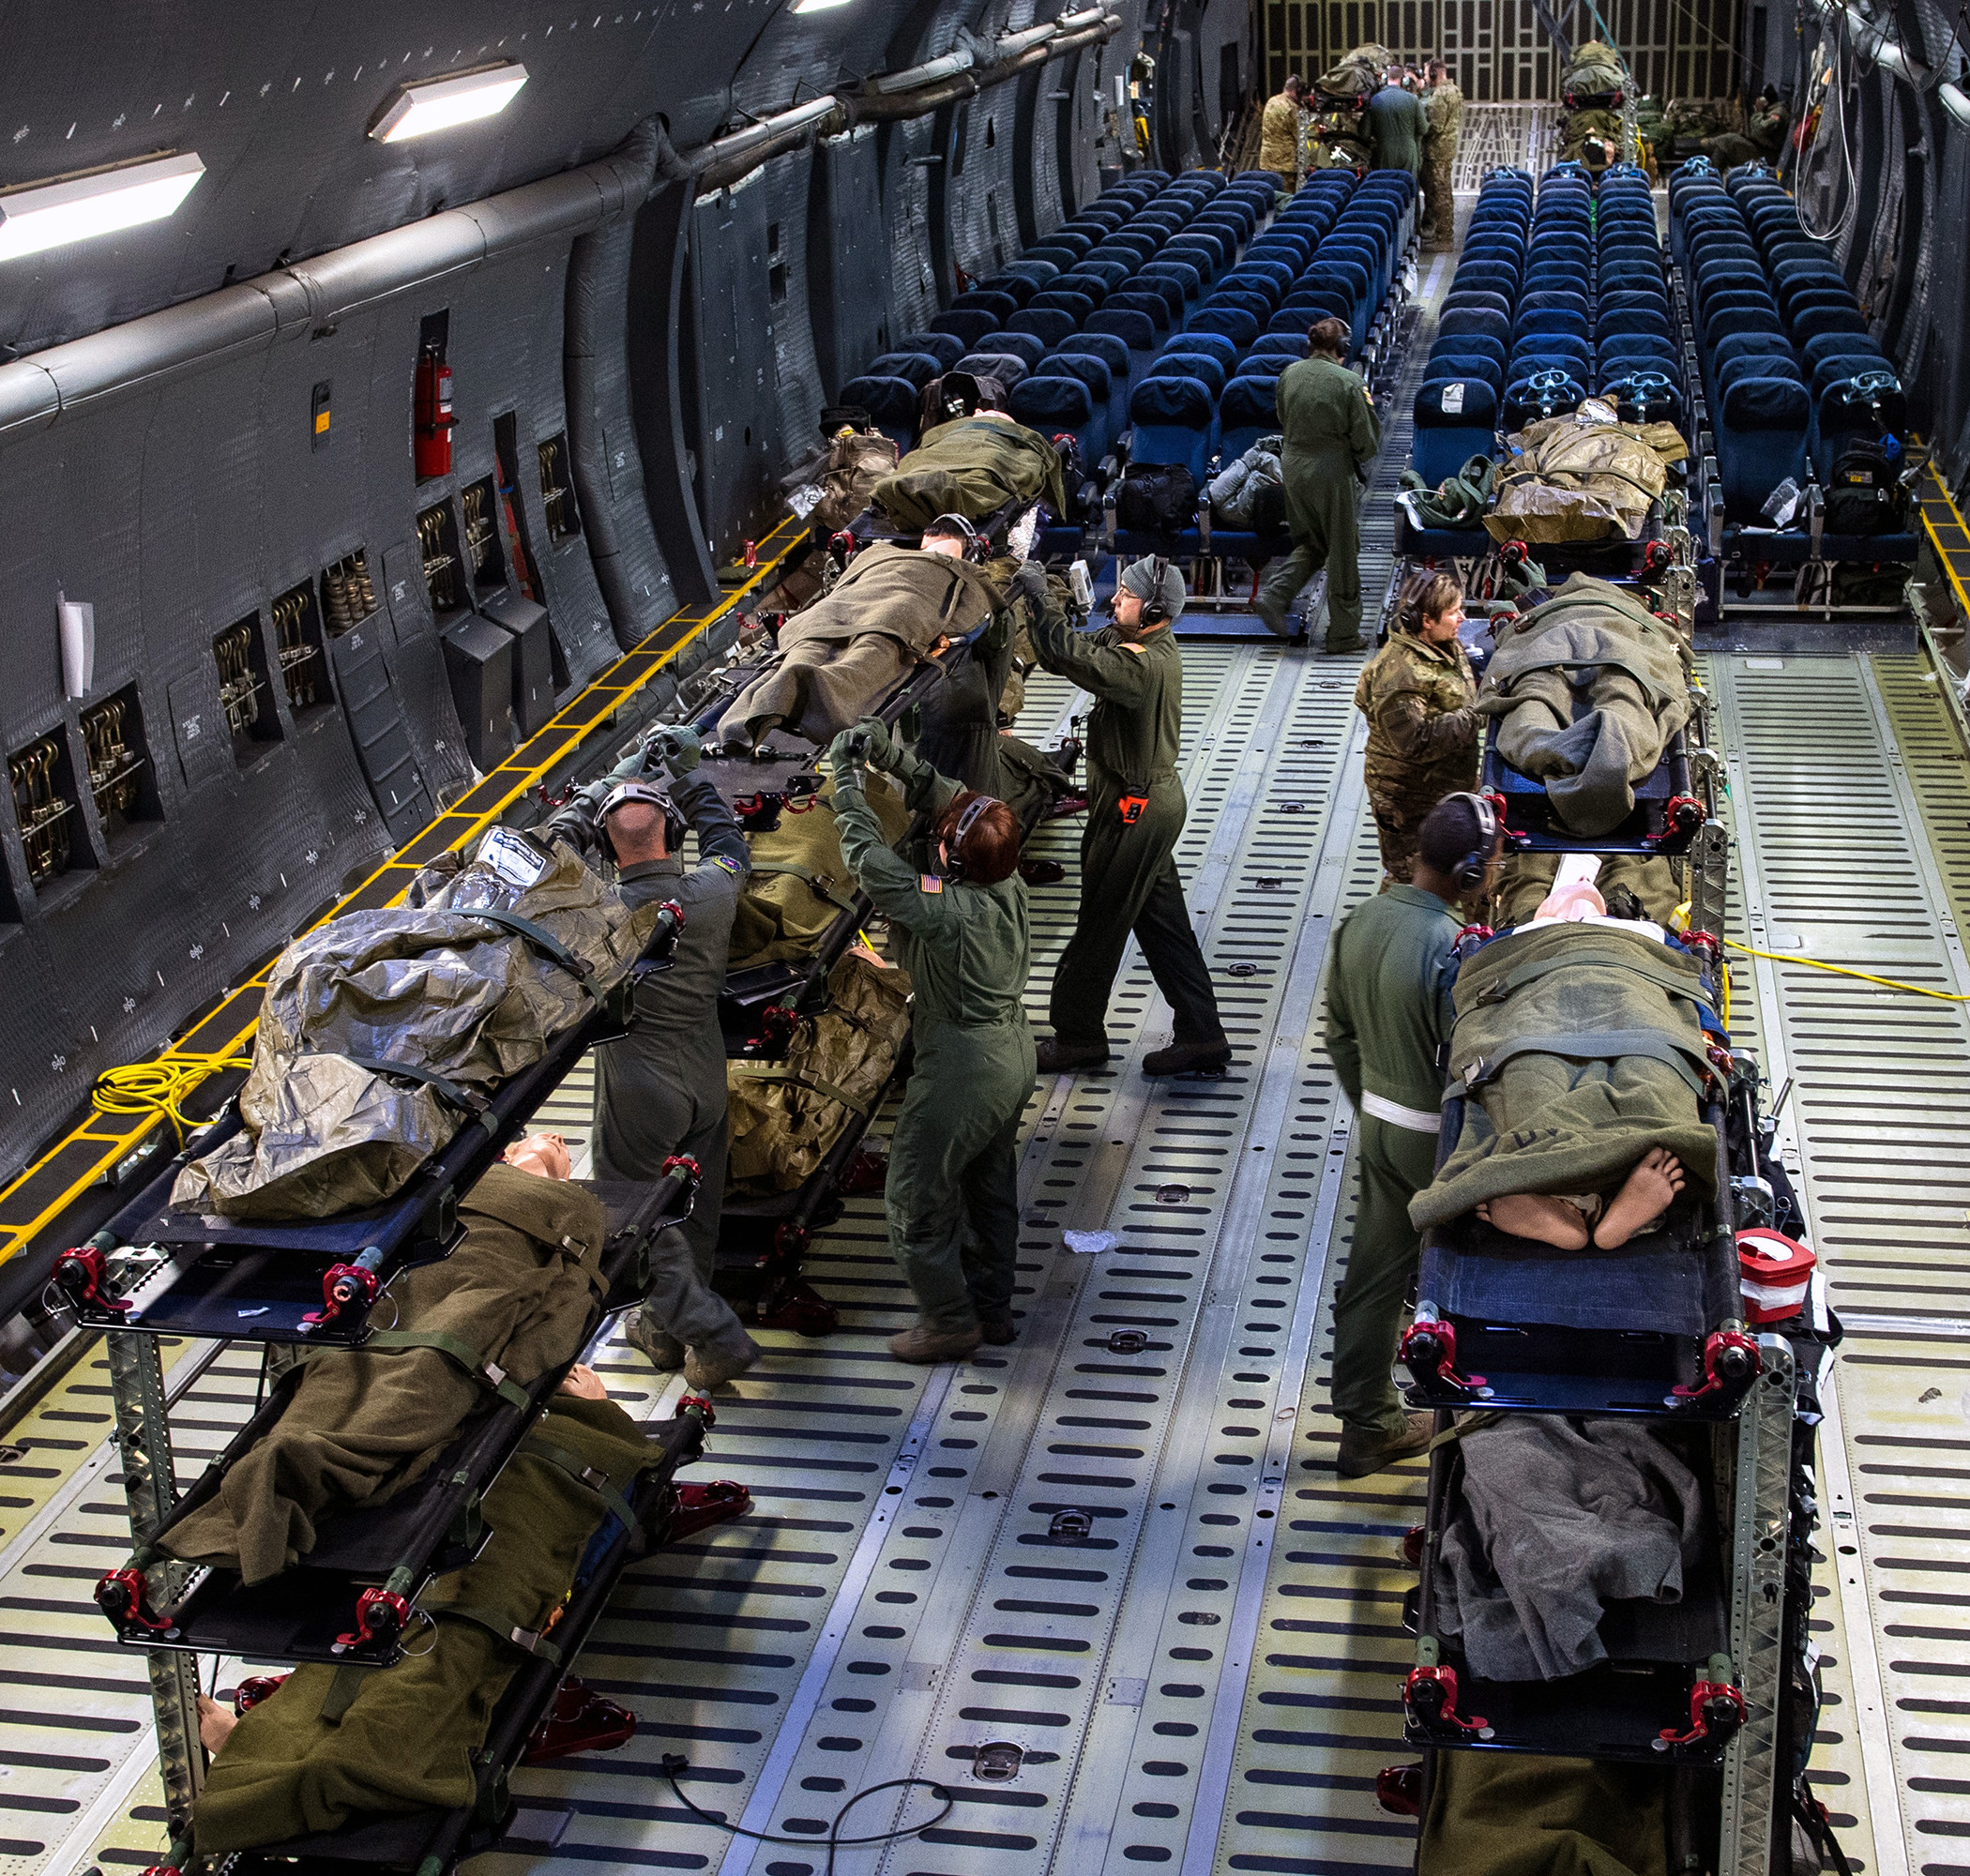 U.S. Airmen • Aeromedical Evacuation Training • C-5M Super Galaxy